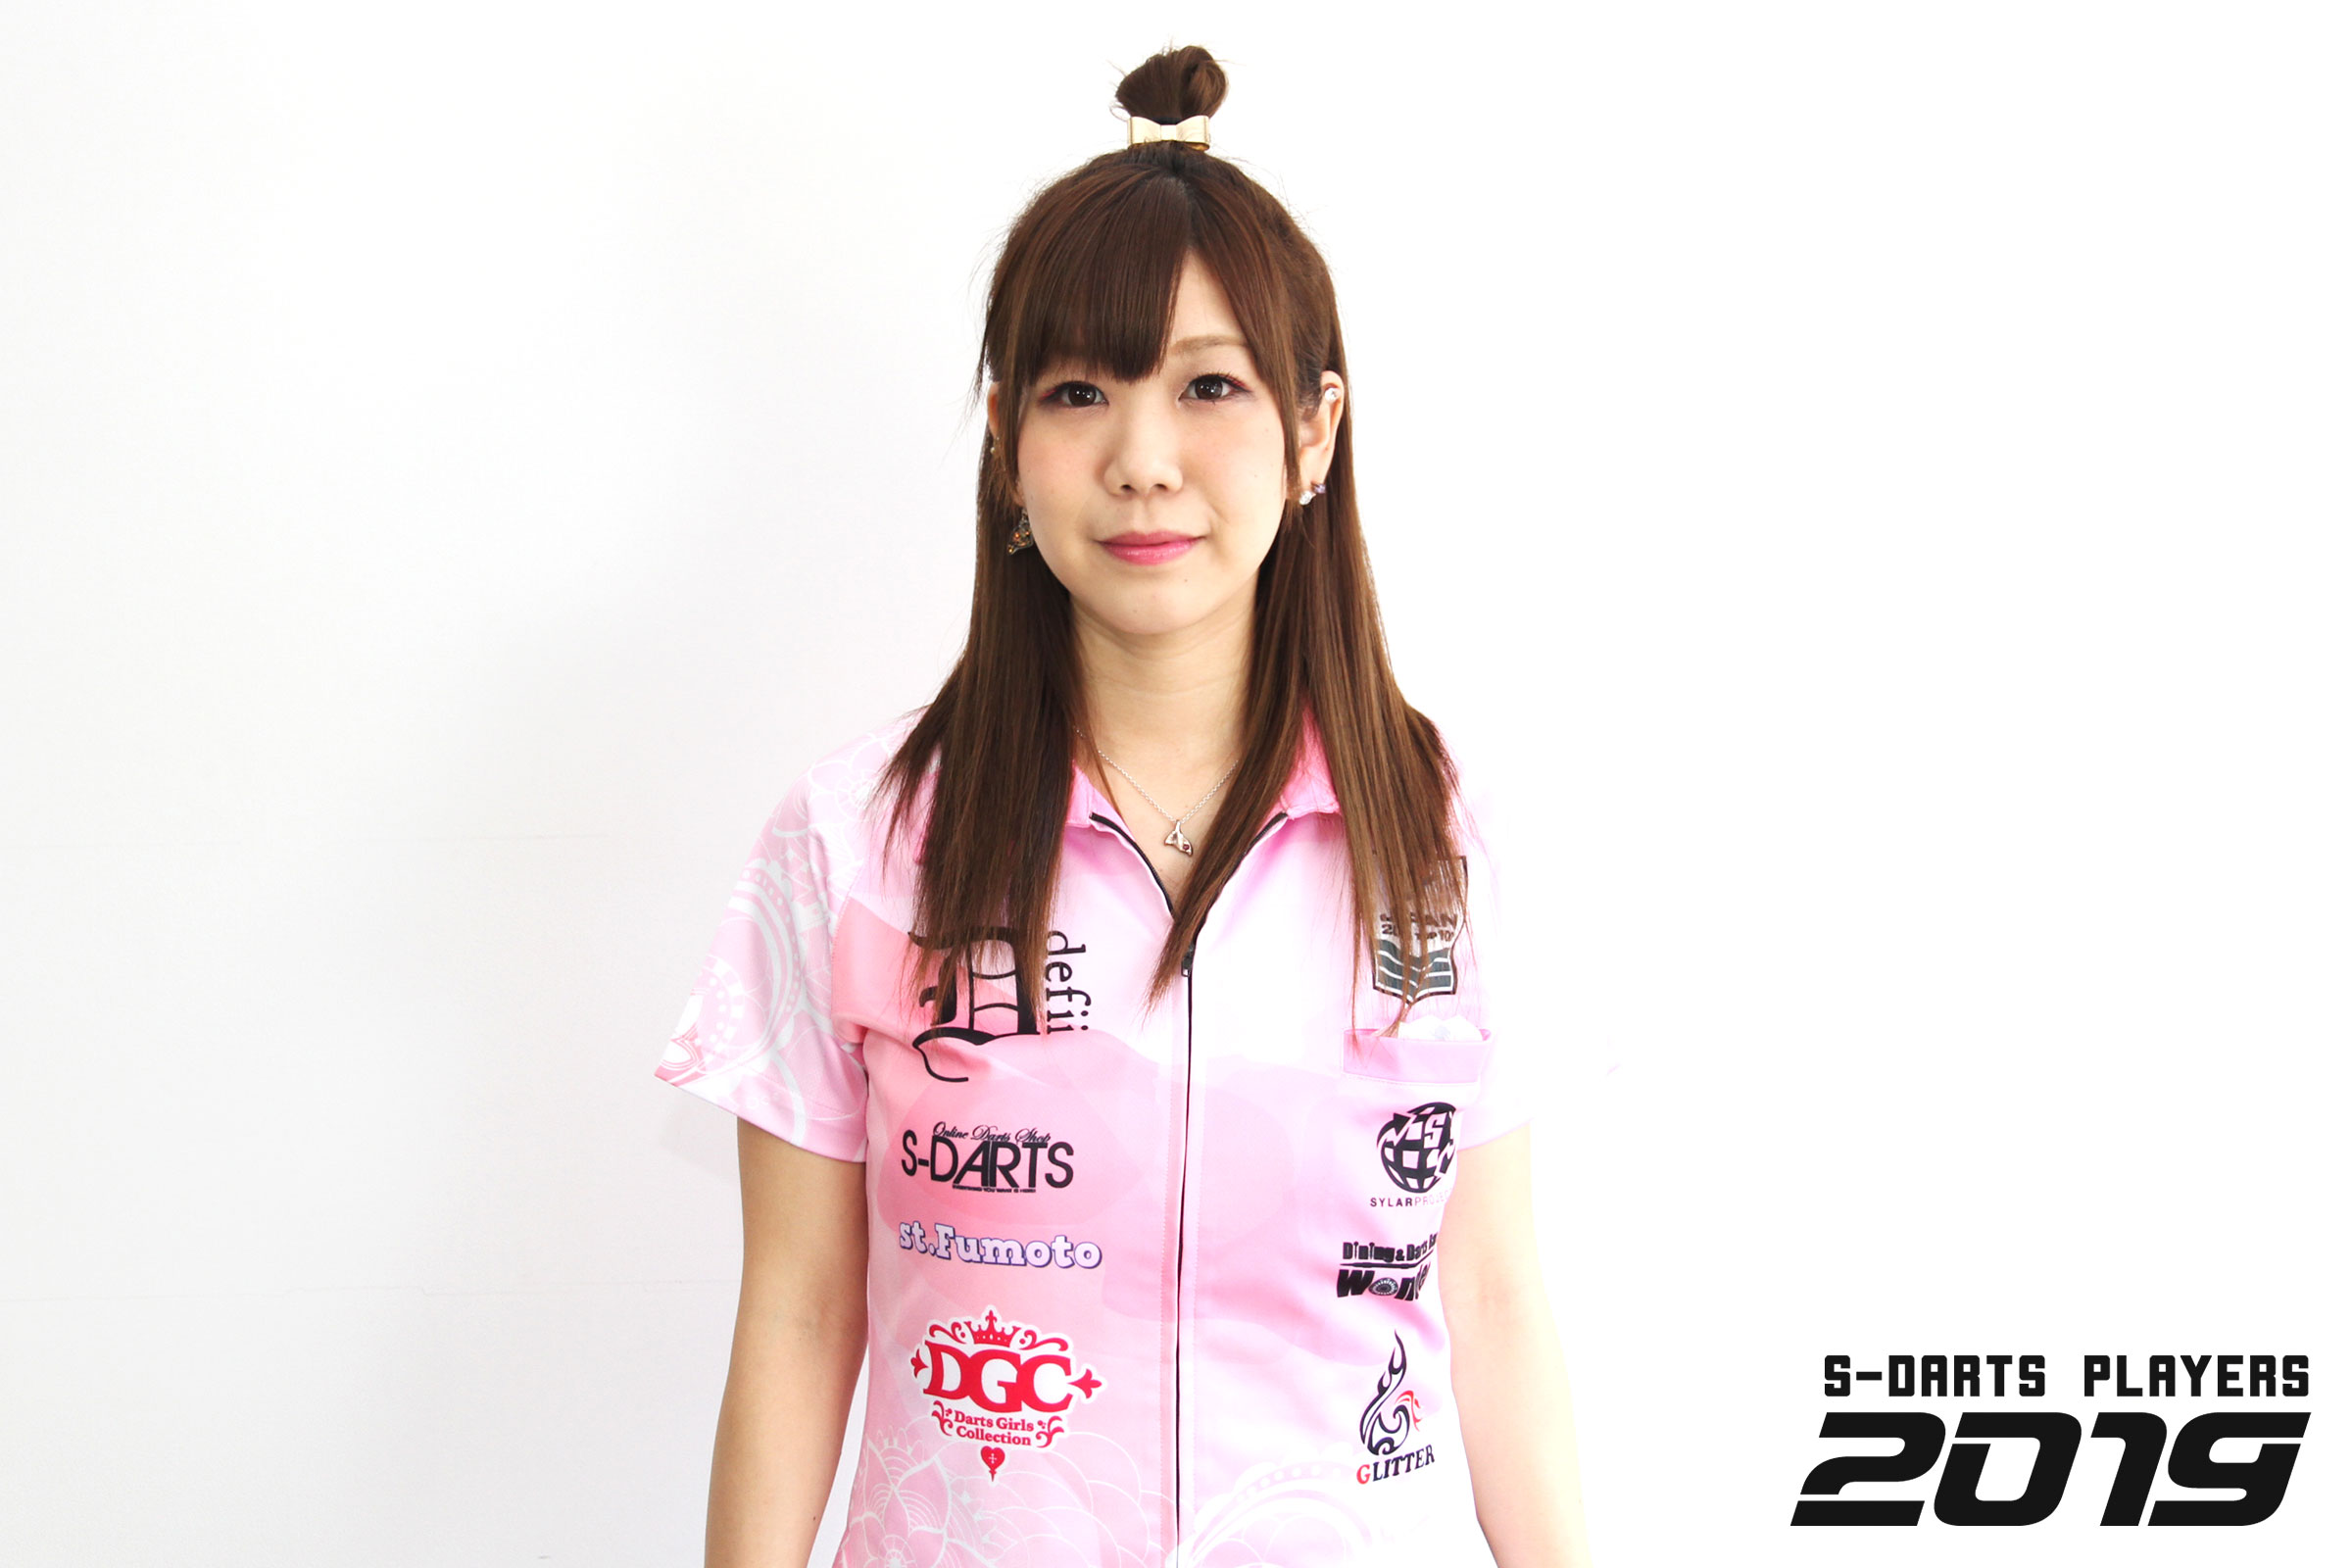 S-DARTS PLAYERS 2019│池田 晴夏